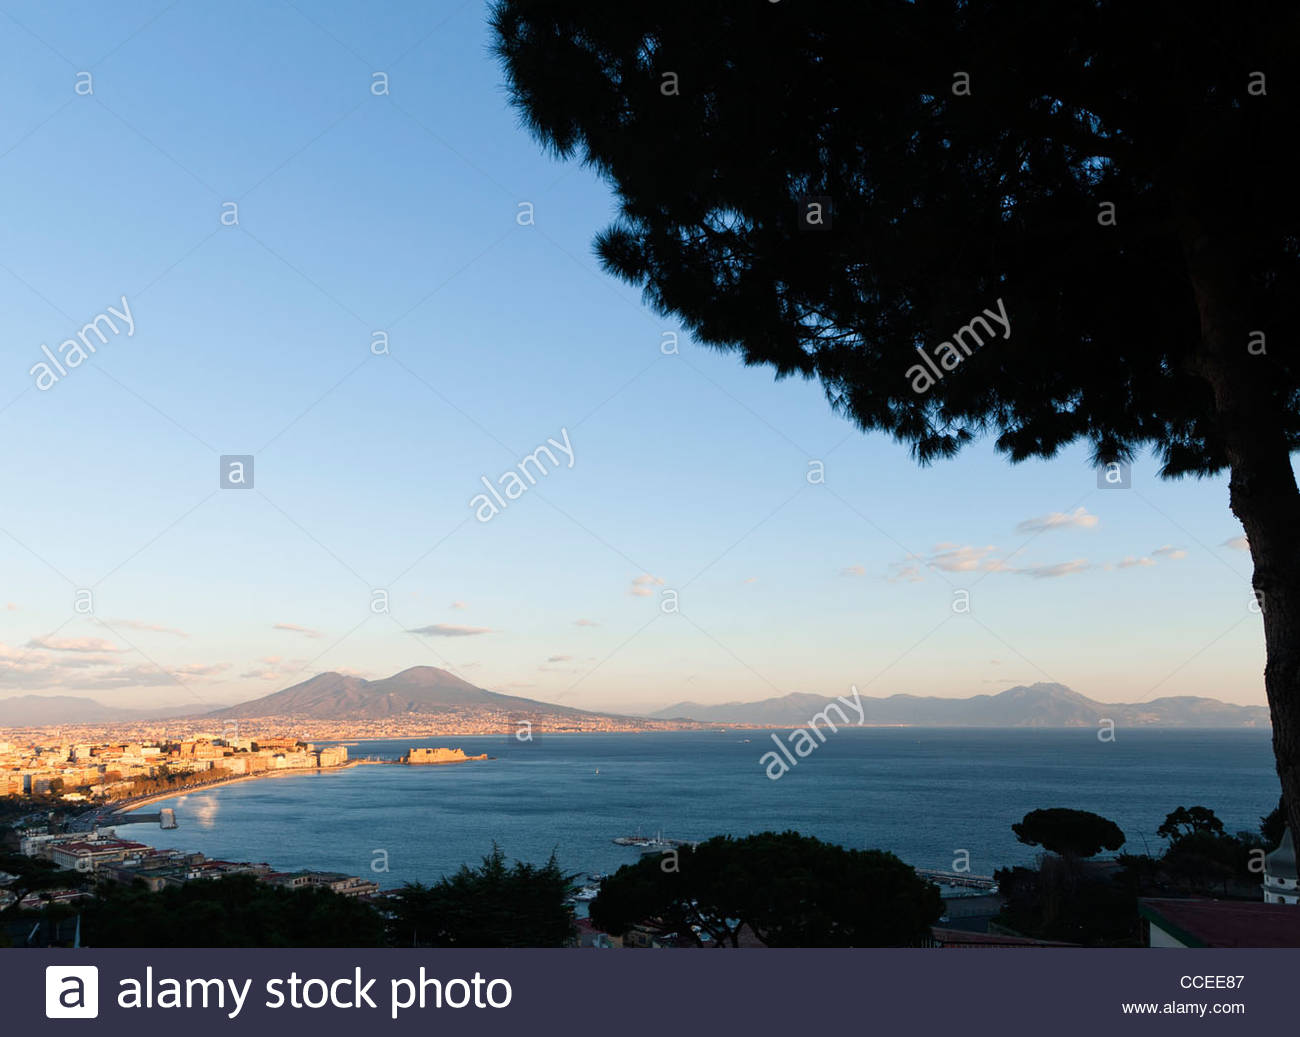 The gulf of Naples, Italy, seen from the hill of Posillipo at sunset - Stock Image